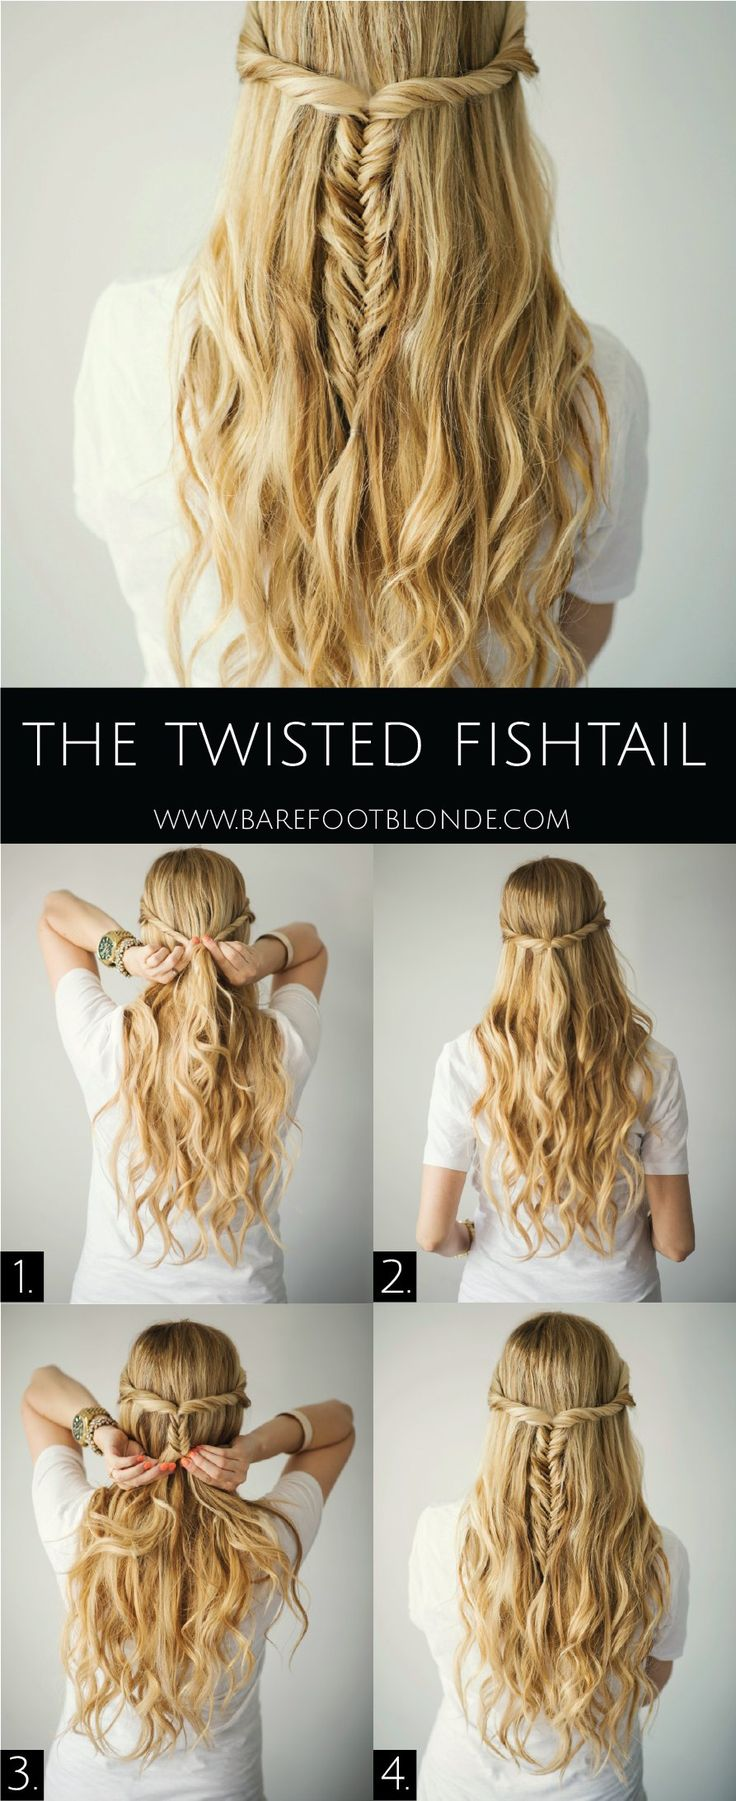 Twisted fishtail.